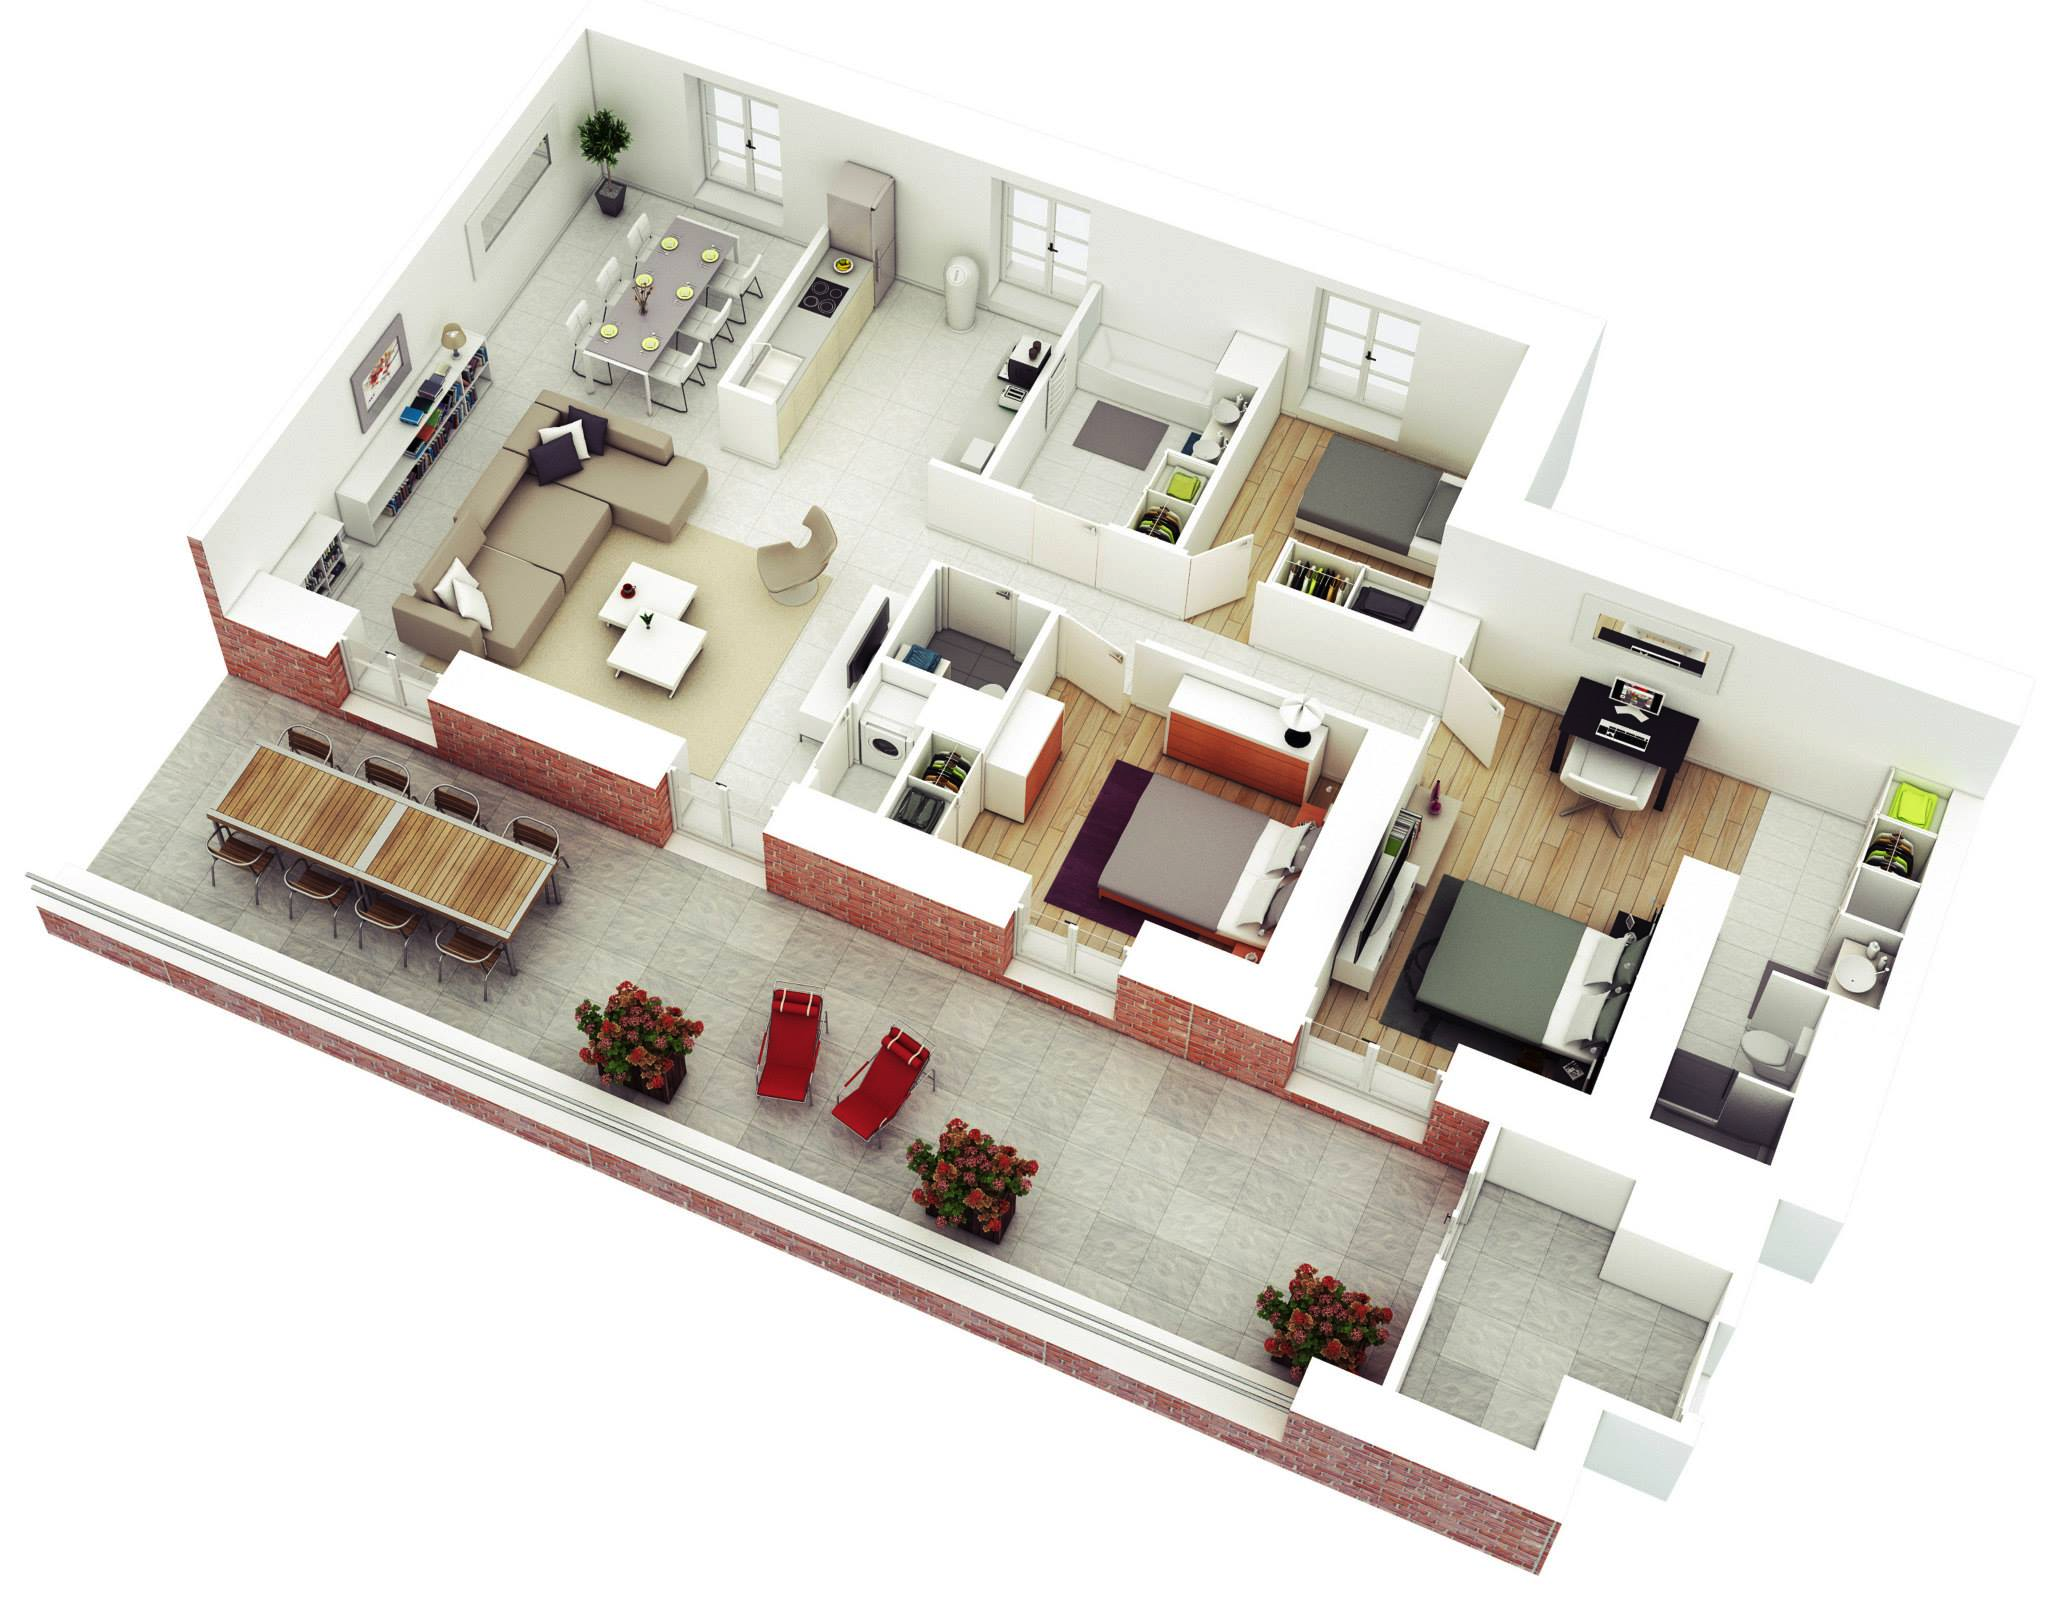 3 Bedroom Home Design Plans 25 More 3 Bedroom 3D Floor Plans  3D Building And Architects